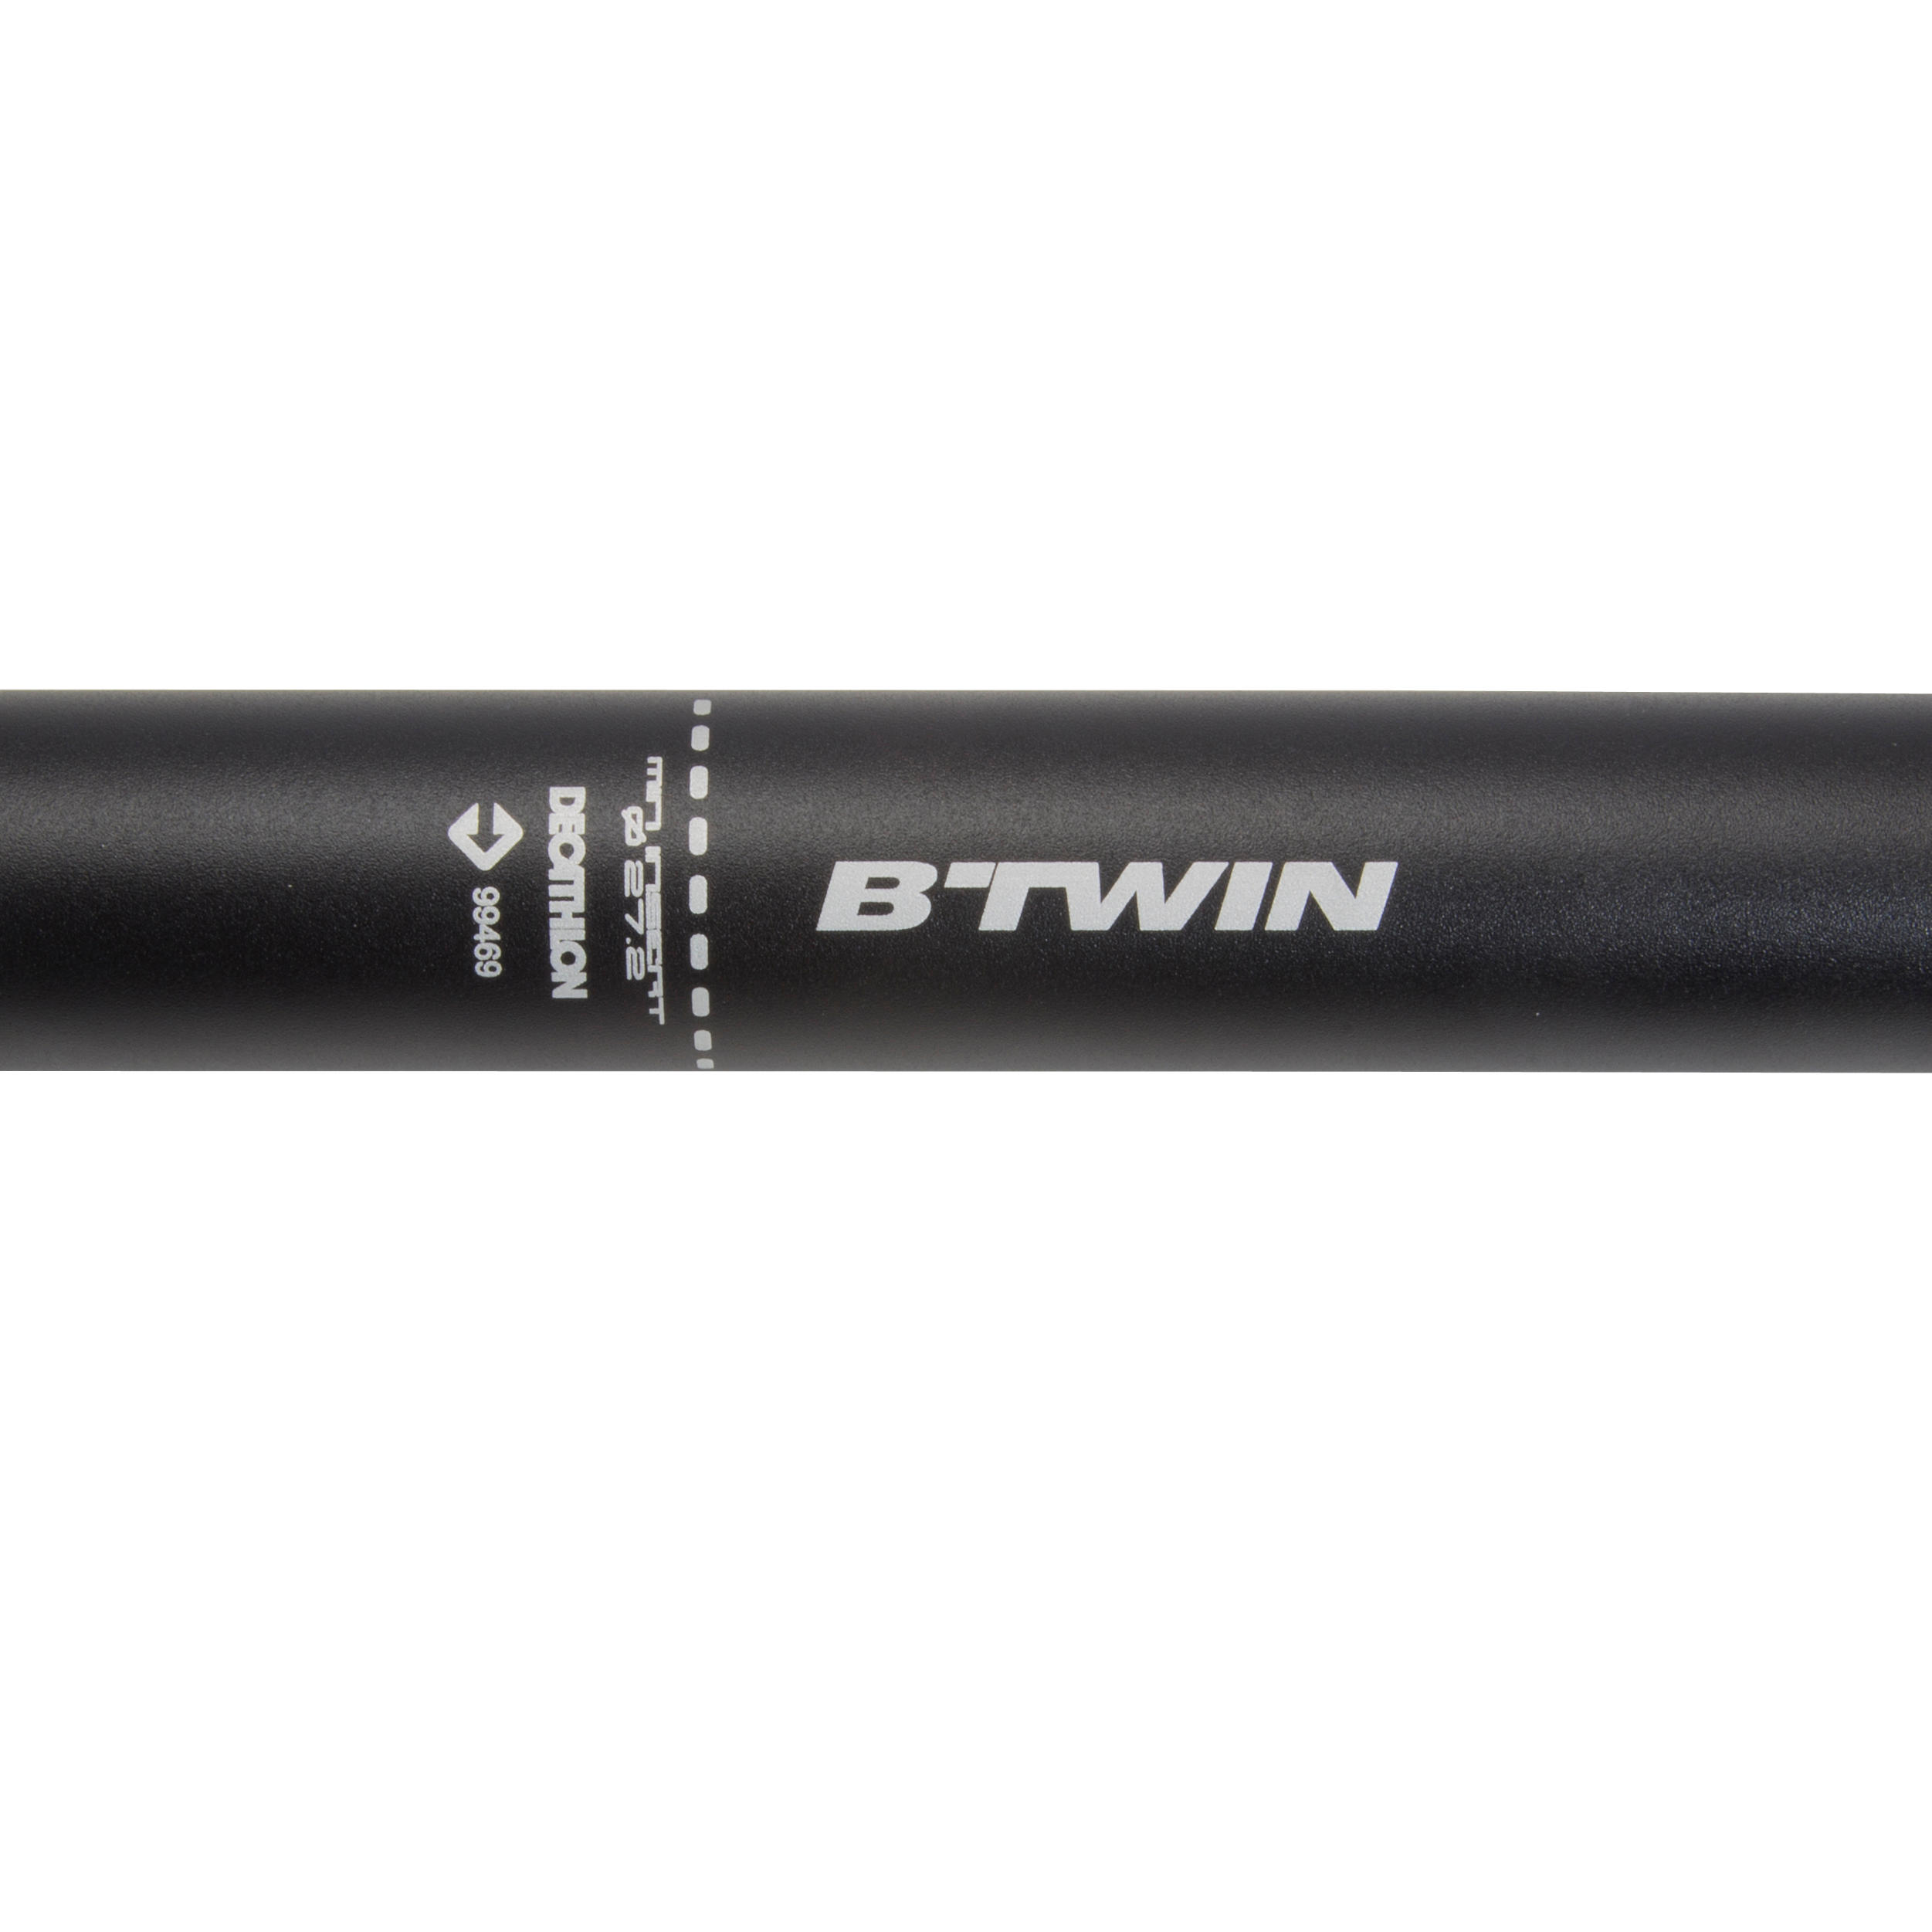 Seat Post With Suspension 27.2mm Diameter And 29.8mm - 33mm Adaptor